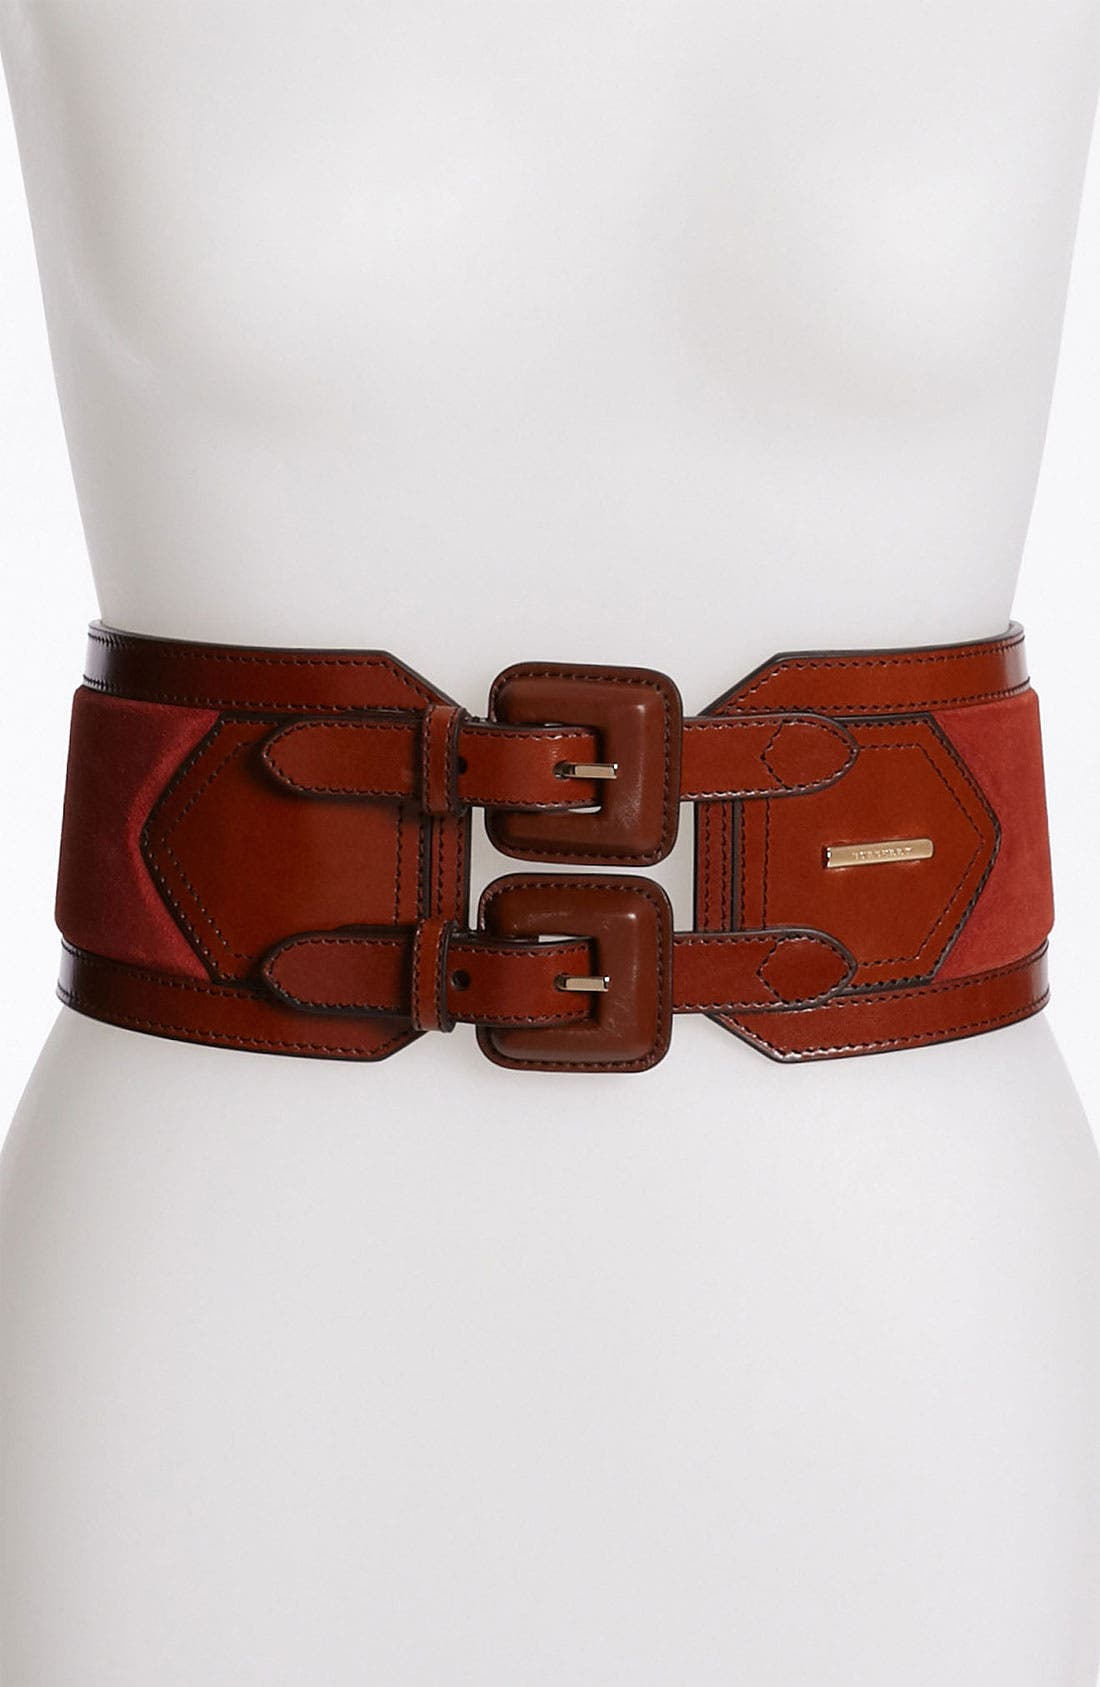 Alternate Image 1 Selected - Burberry Leather & Suede Belt